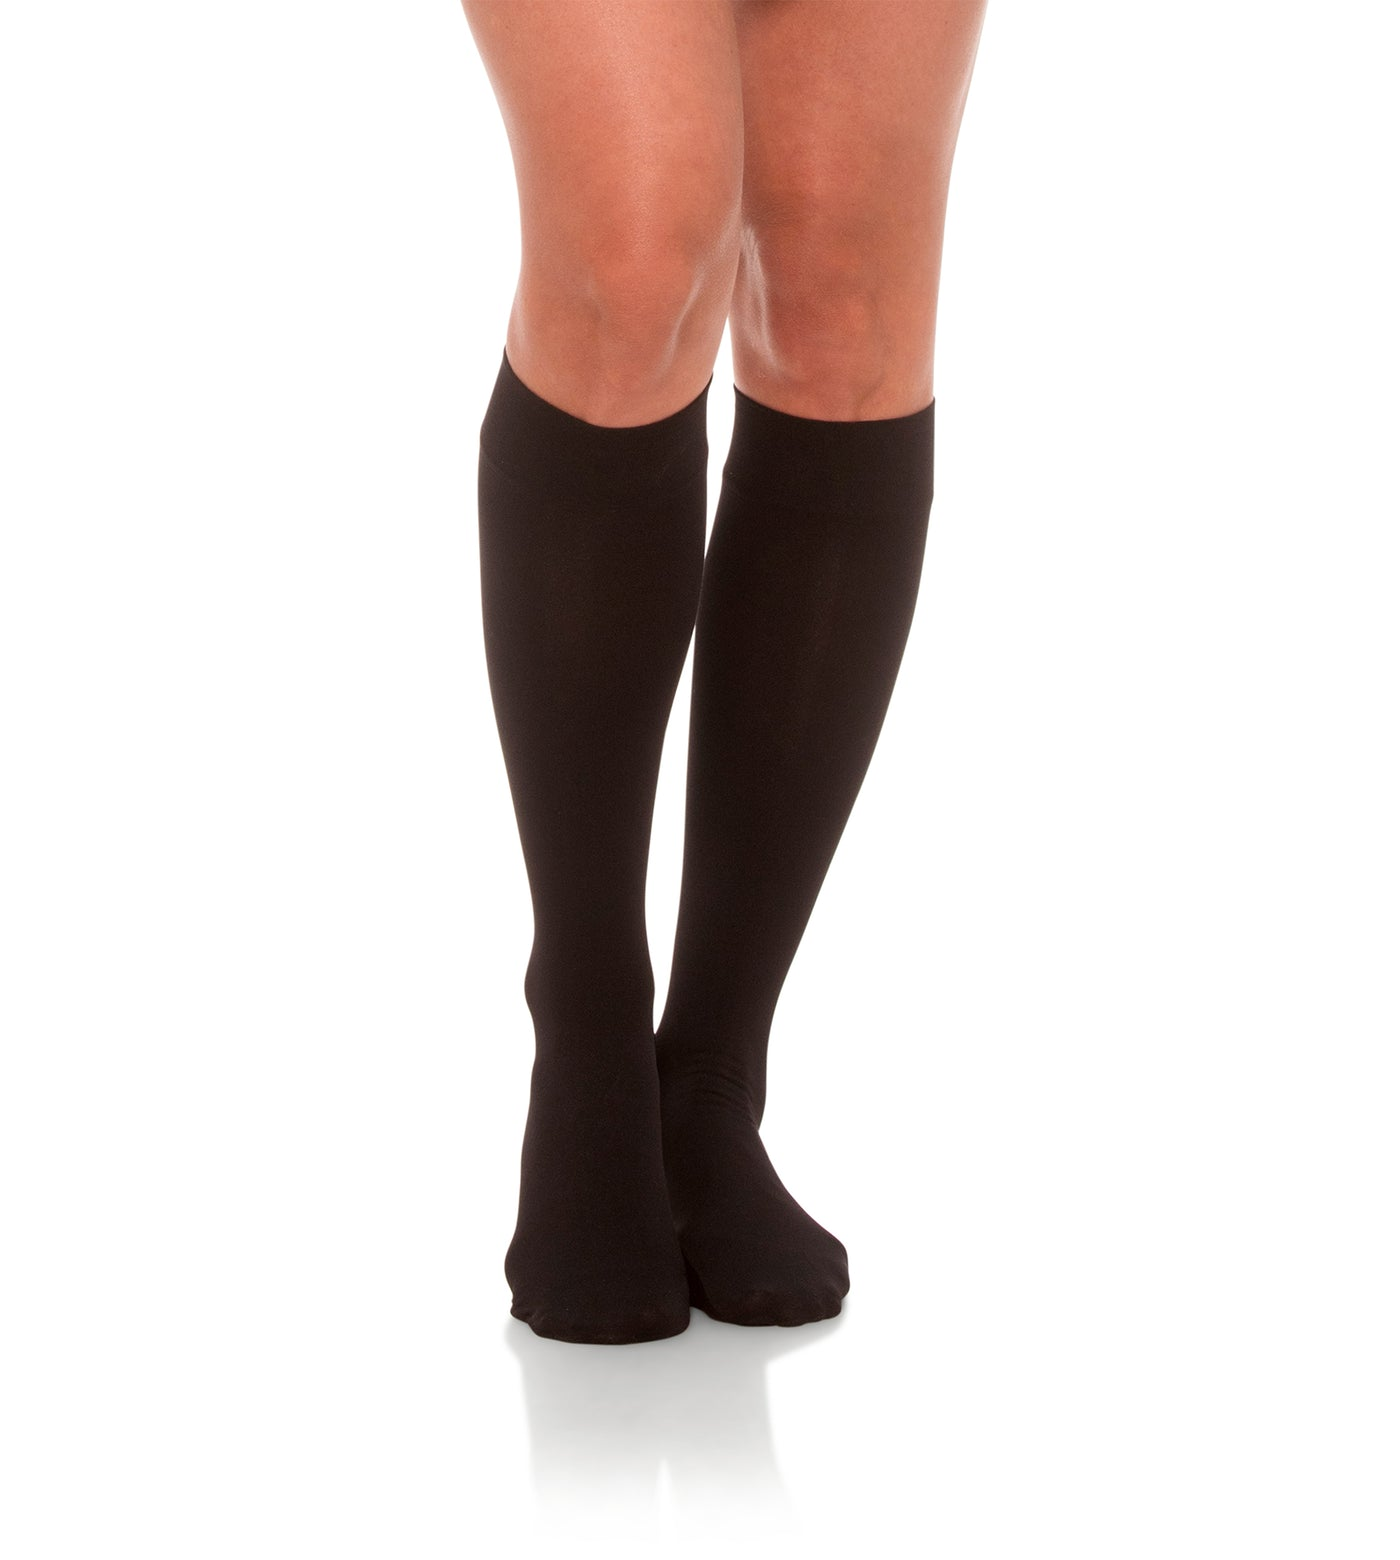 Mens Compression Knee highs 15-20 mmHg